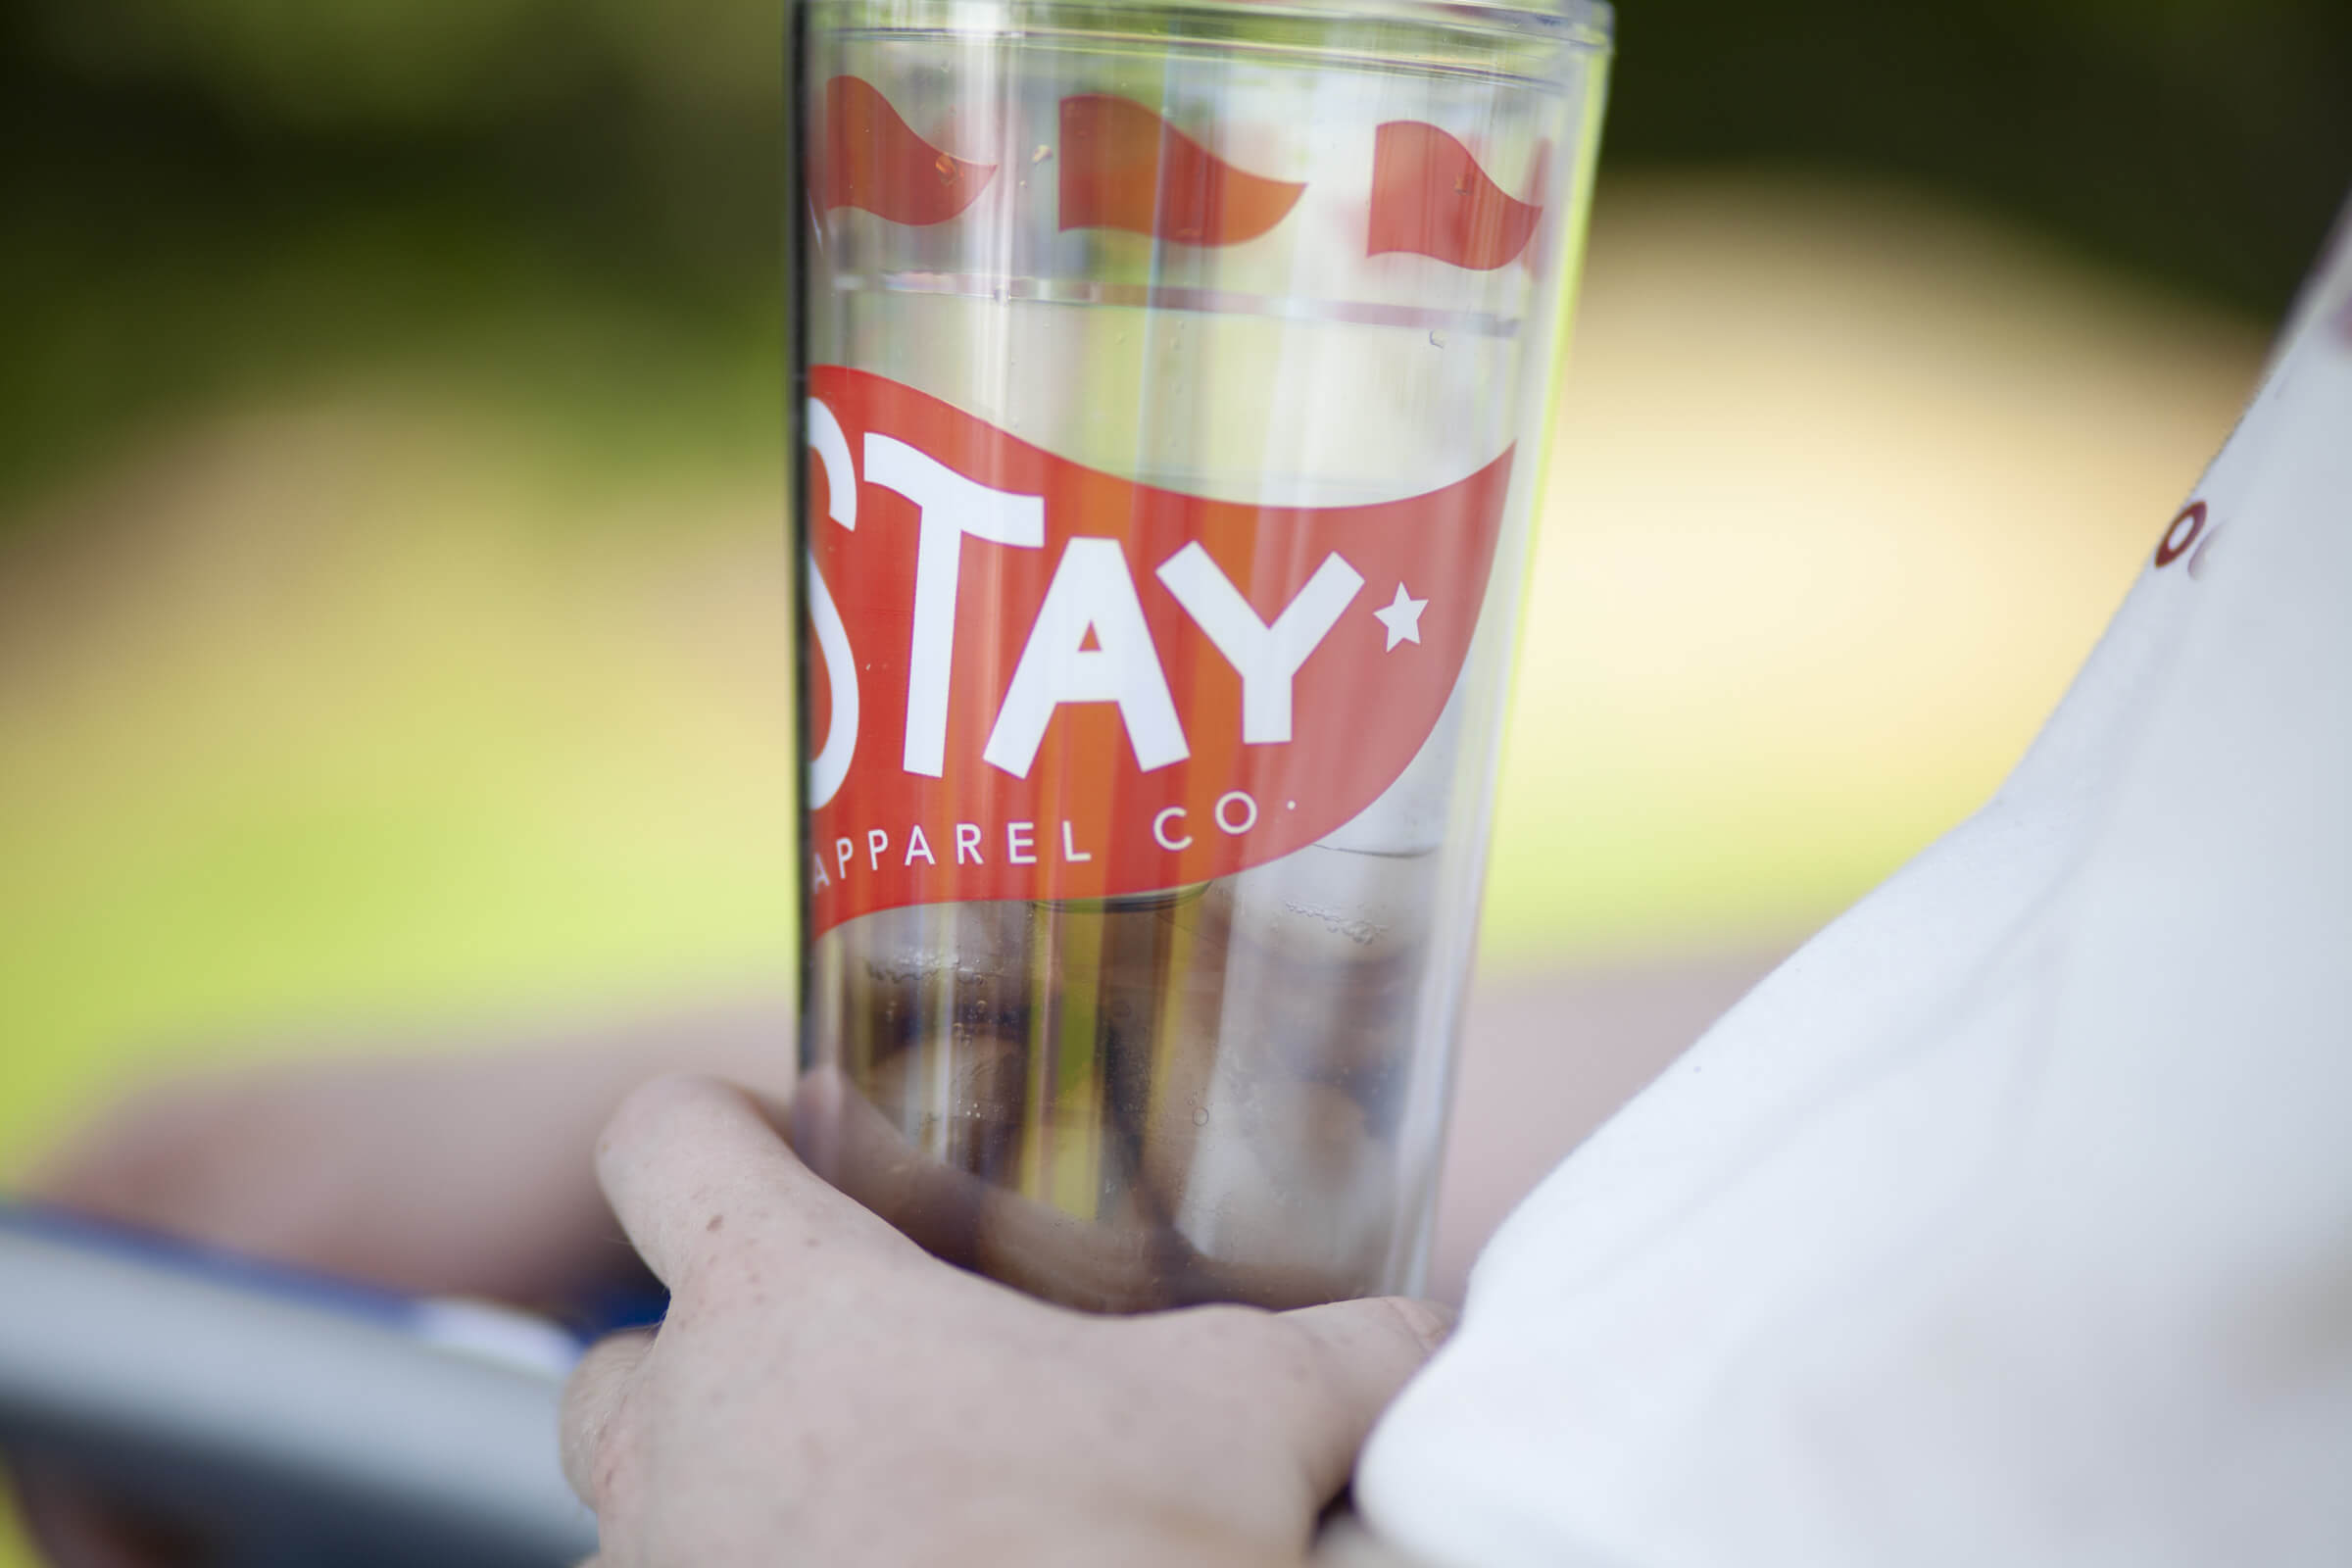 All of our products are made in the USA, such as this Indiana-made insulated tumbler.